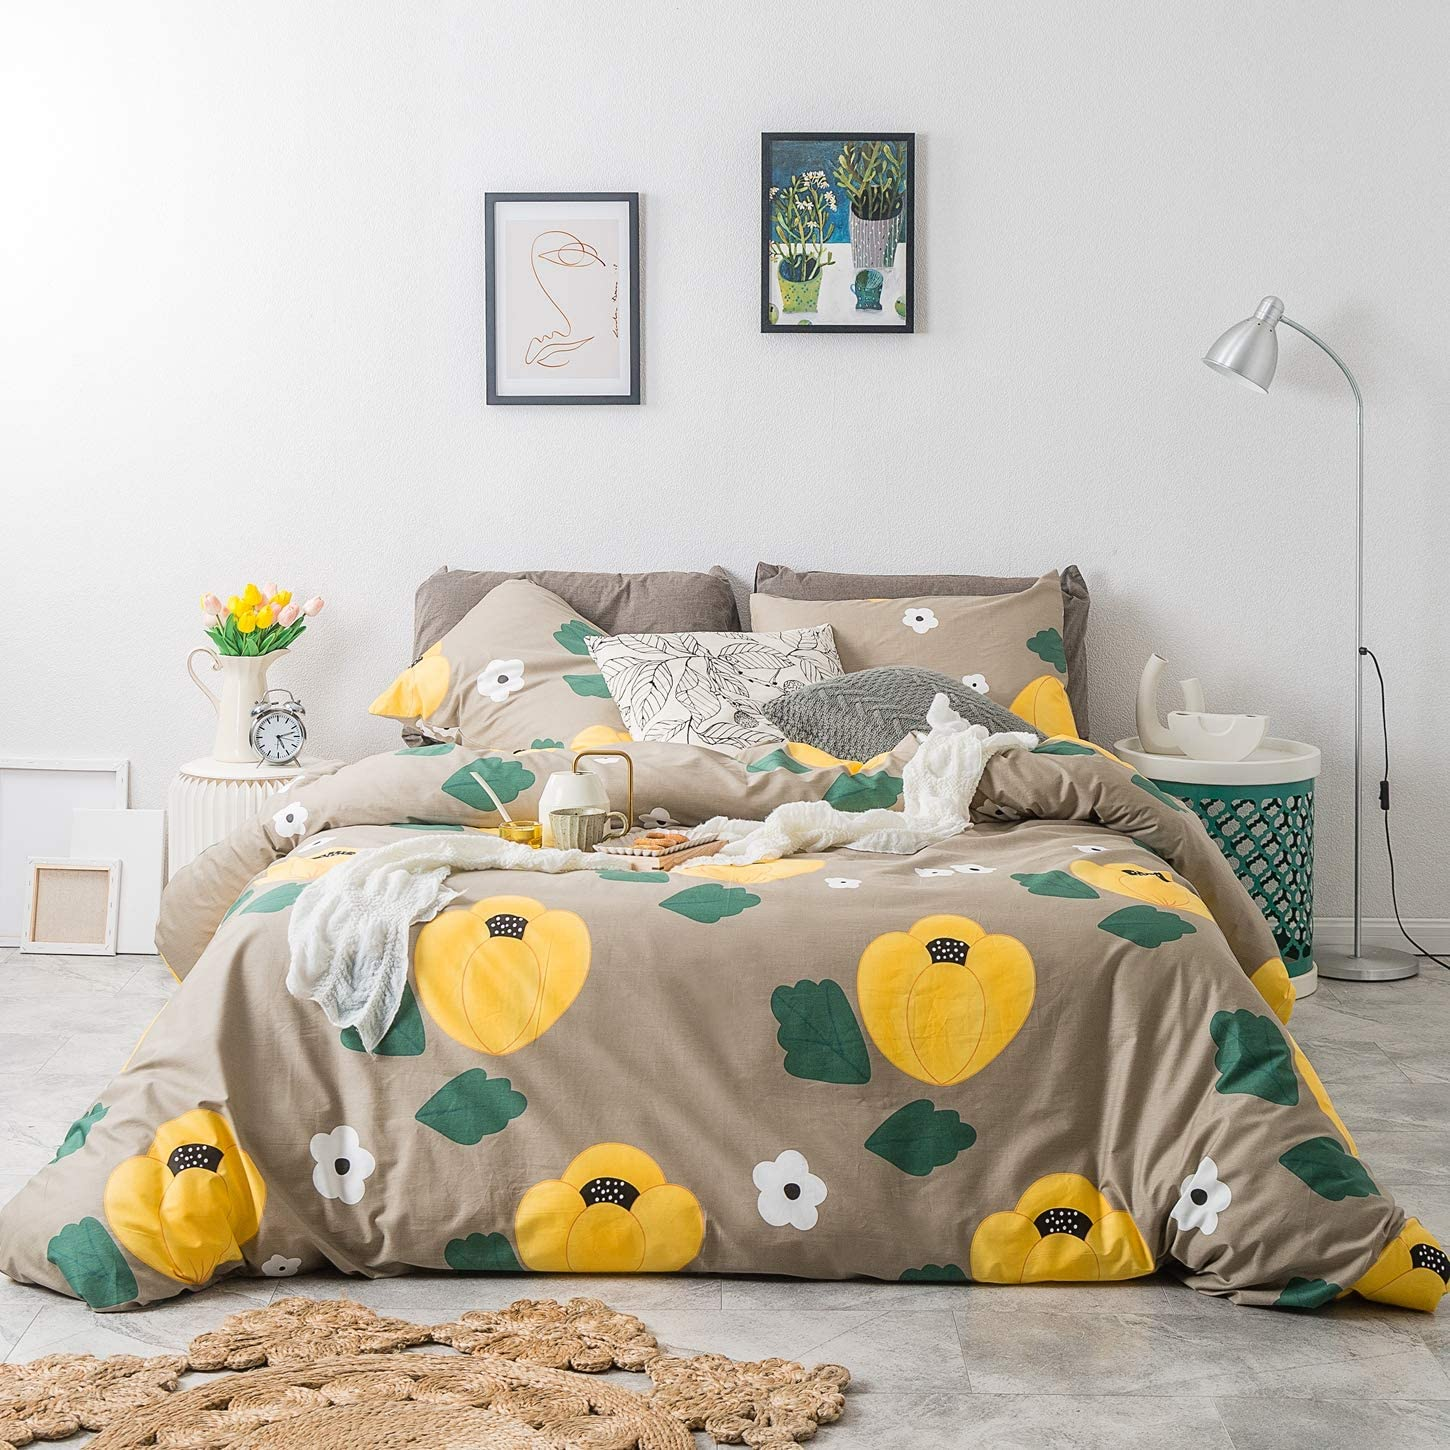 SUSYBAO 3 Piece Duvet Cover Set 100% Cotton Queen Size Yellow Floral Flower Pattern Bedding Set 1 Green Botanical Duvet Cover with Zipper Ties 2 Pillowcases Luxury Quality Soft Lightweight Durable